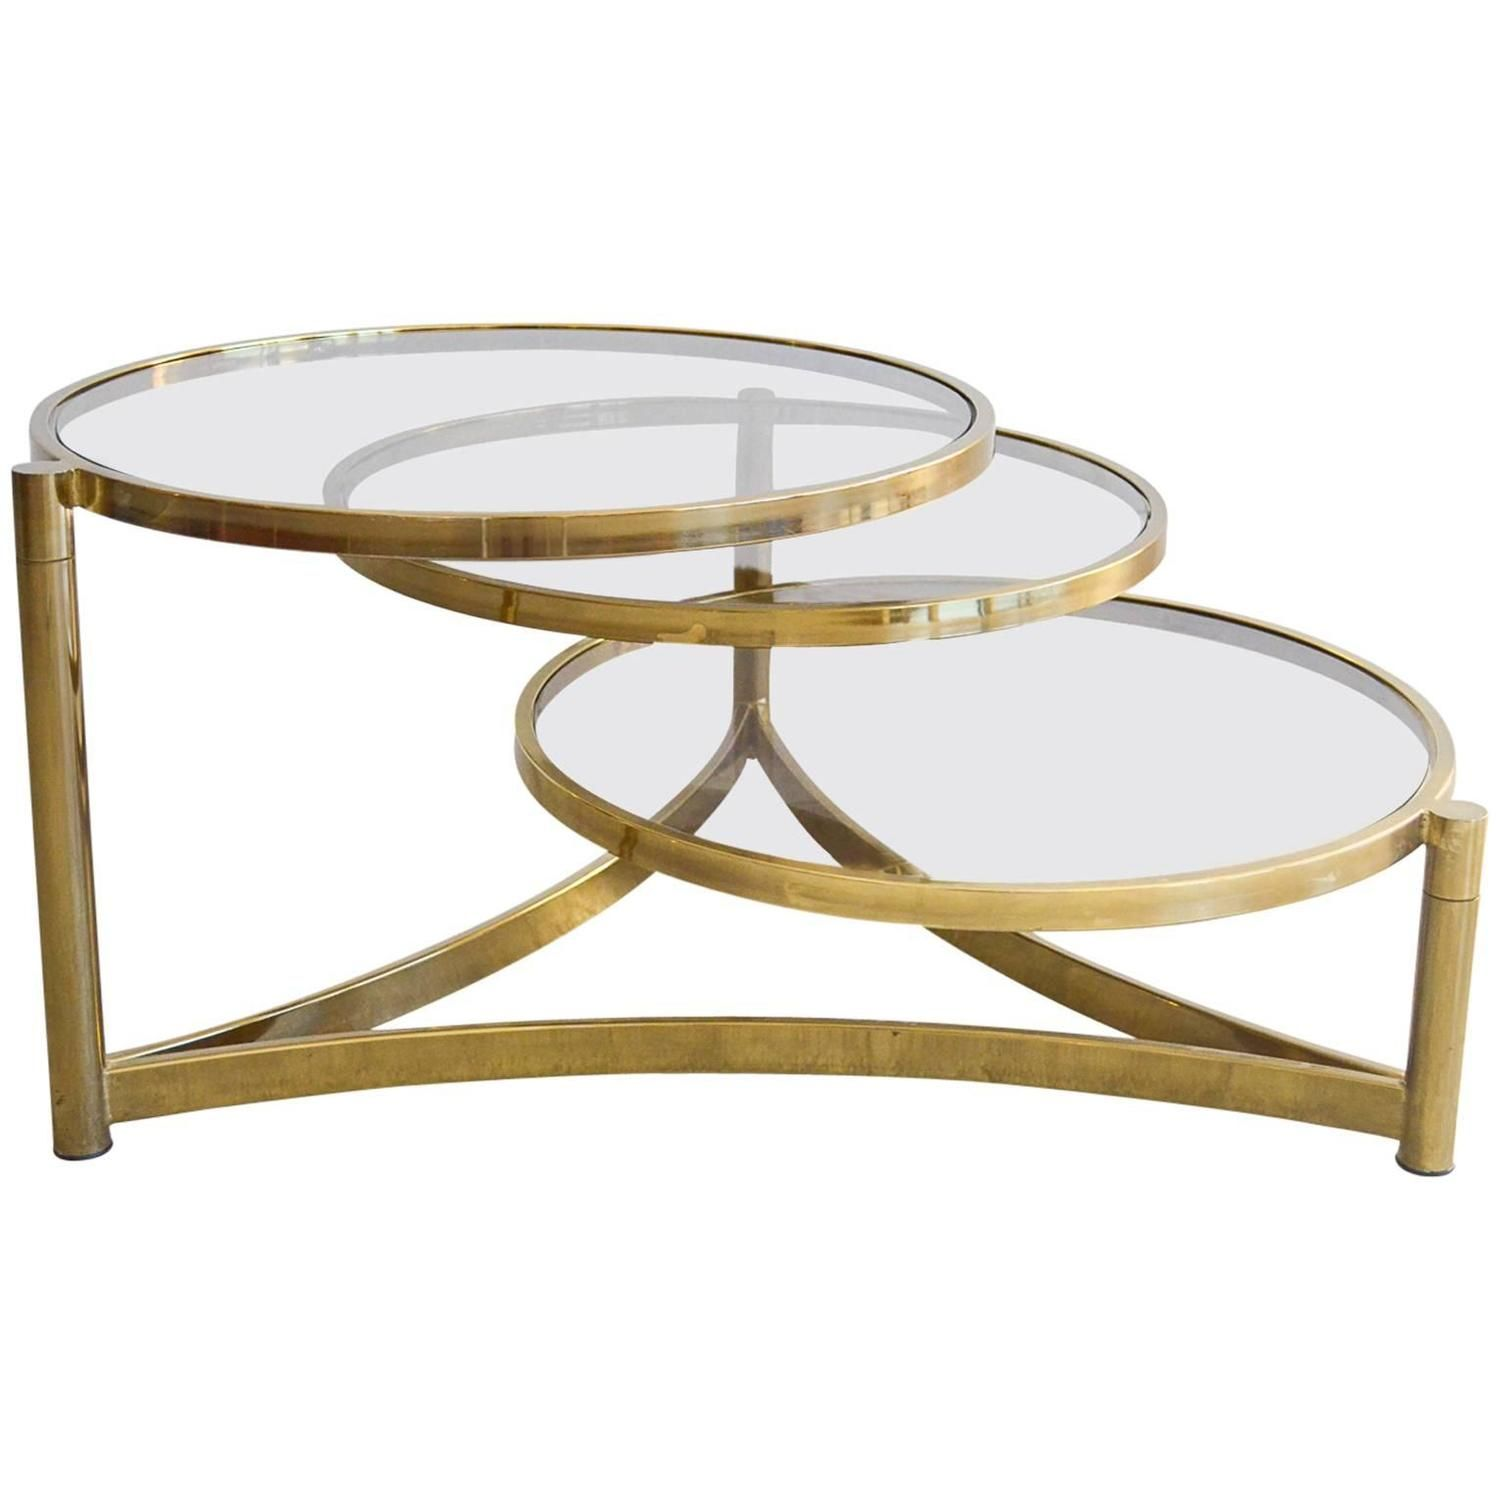 Milo Baughman Tri Level Brass And Glass Swivel Coffee Table Coffee Table Antique Coffee Tables Square Glass Coffee Table